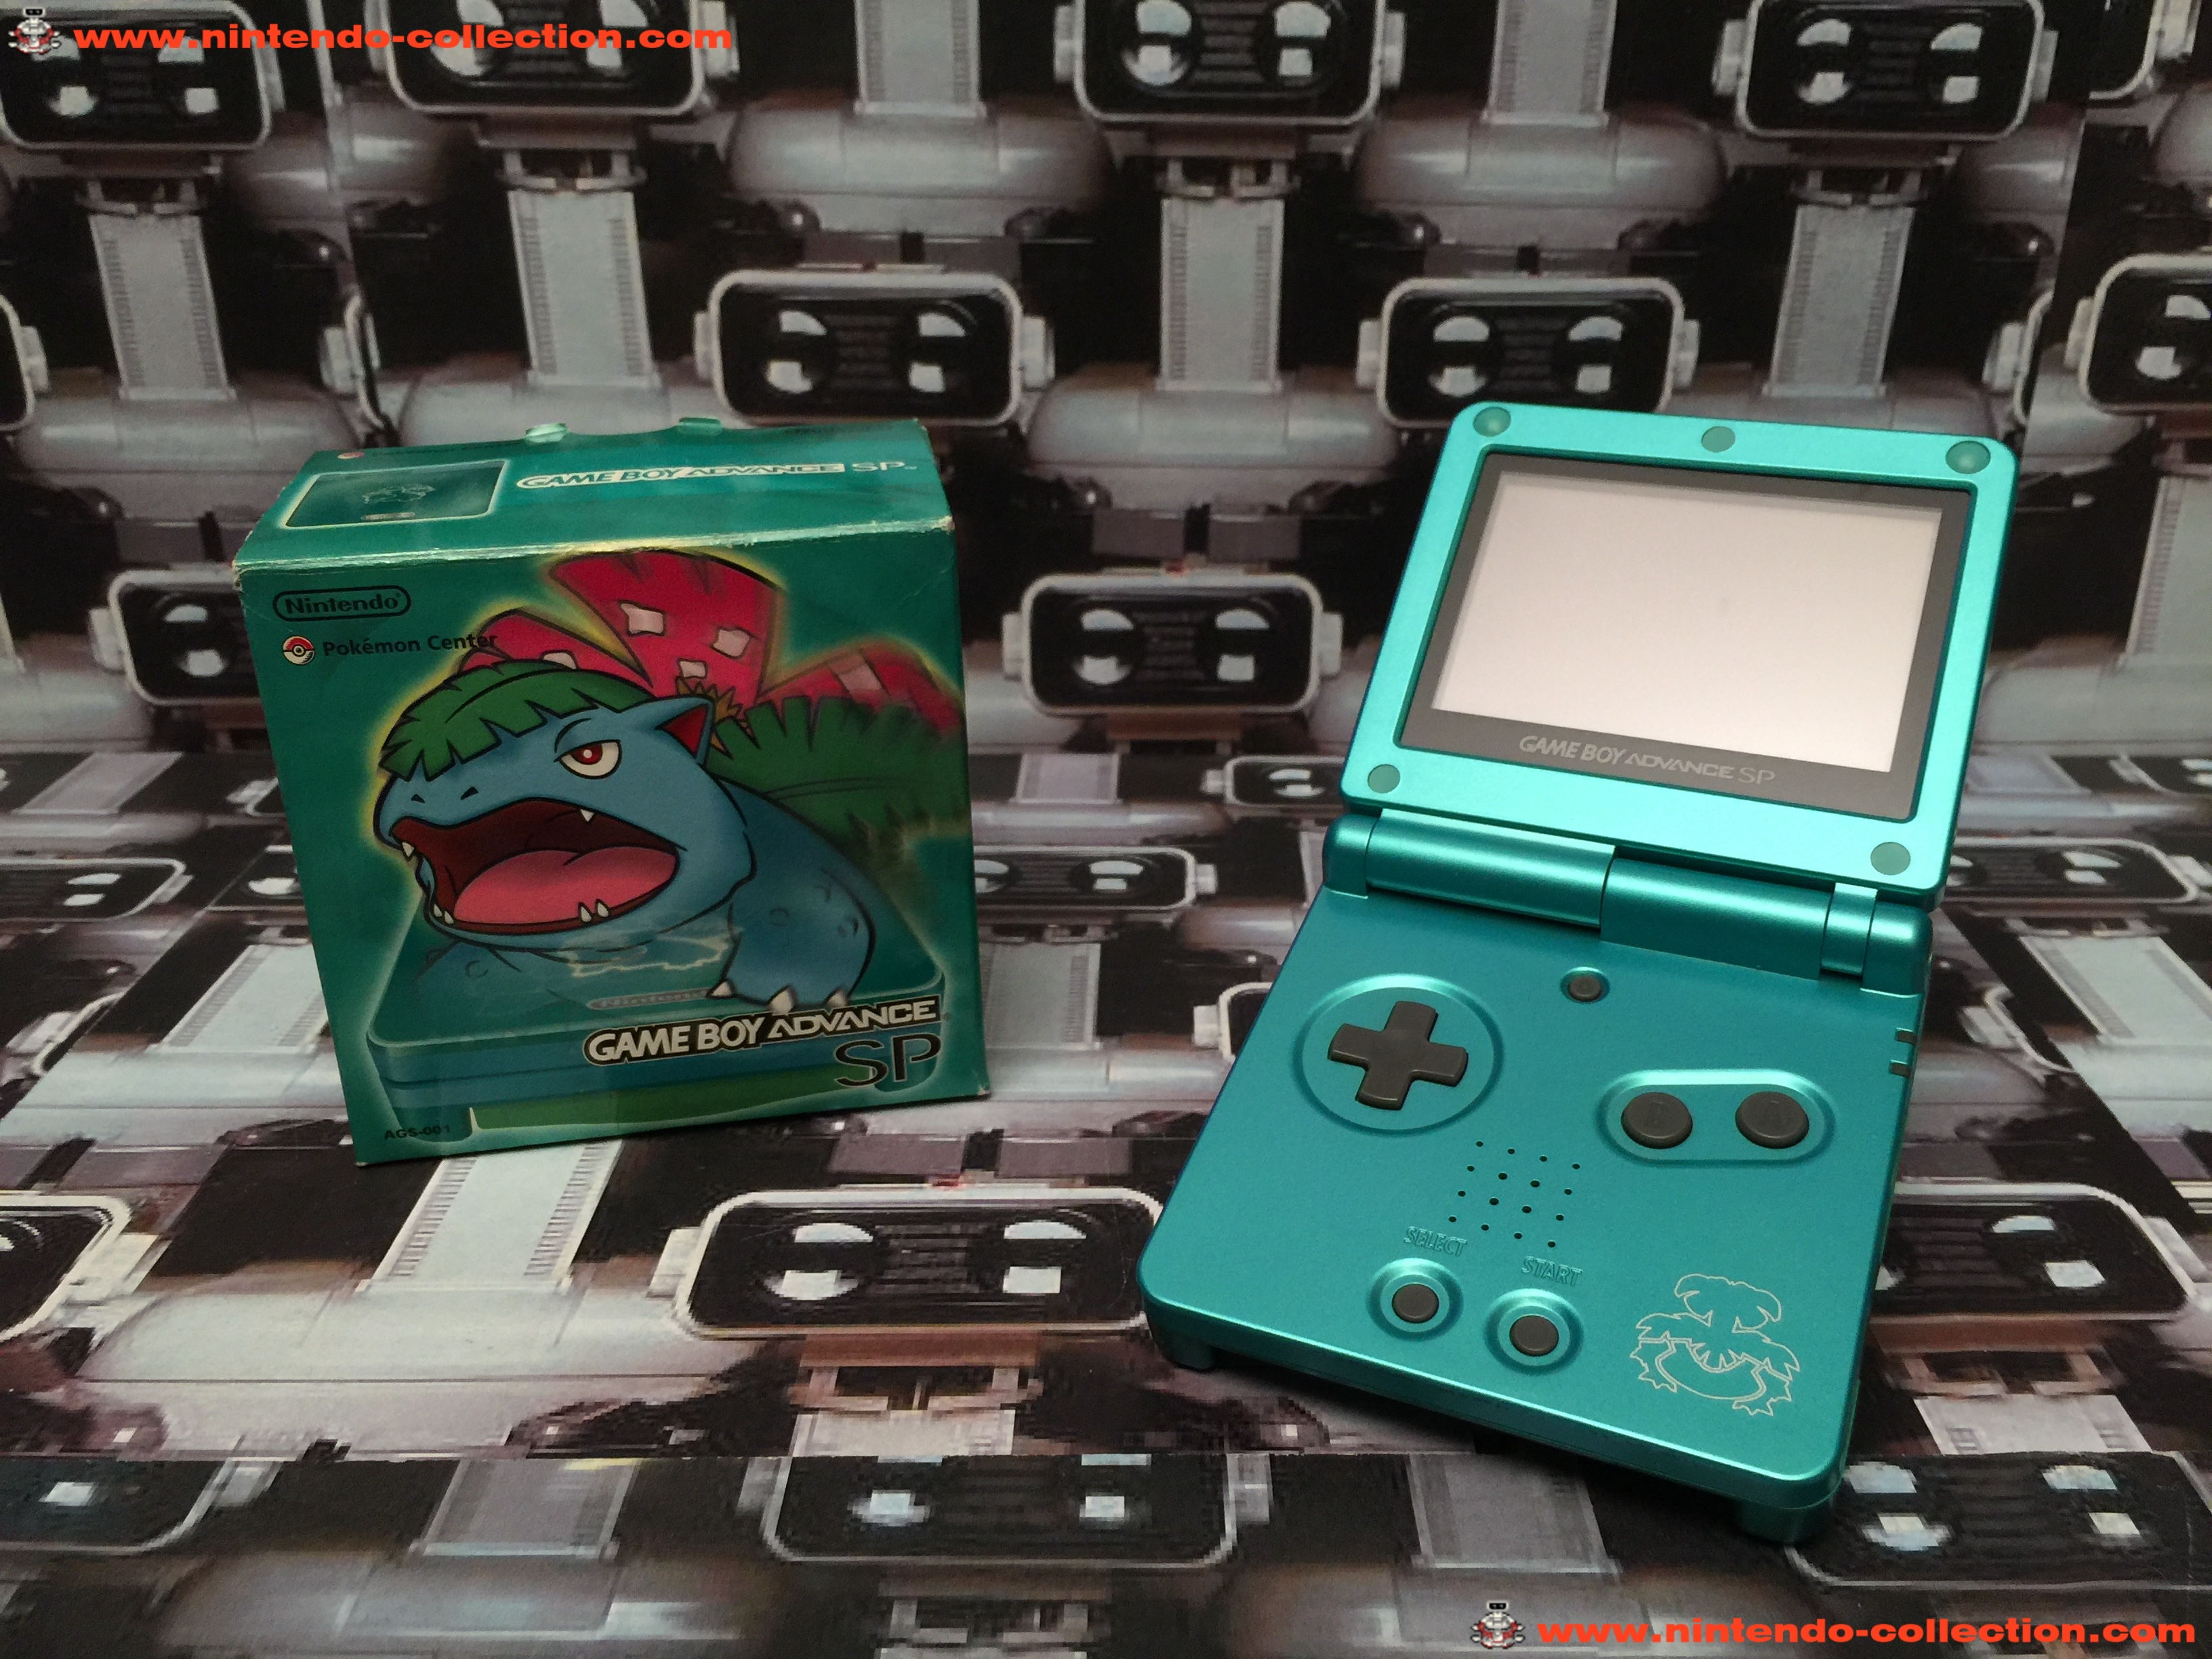 www.nintendo-collection.com - Gameboy Advance GBA SP Venusaur Leaf Green Bulbizarre Vert Feuille Lim